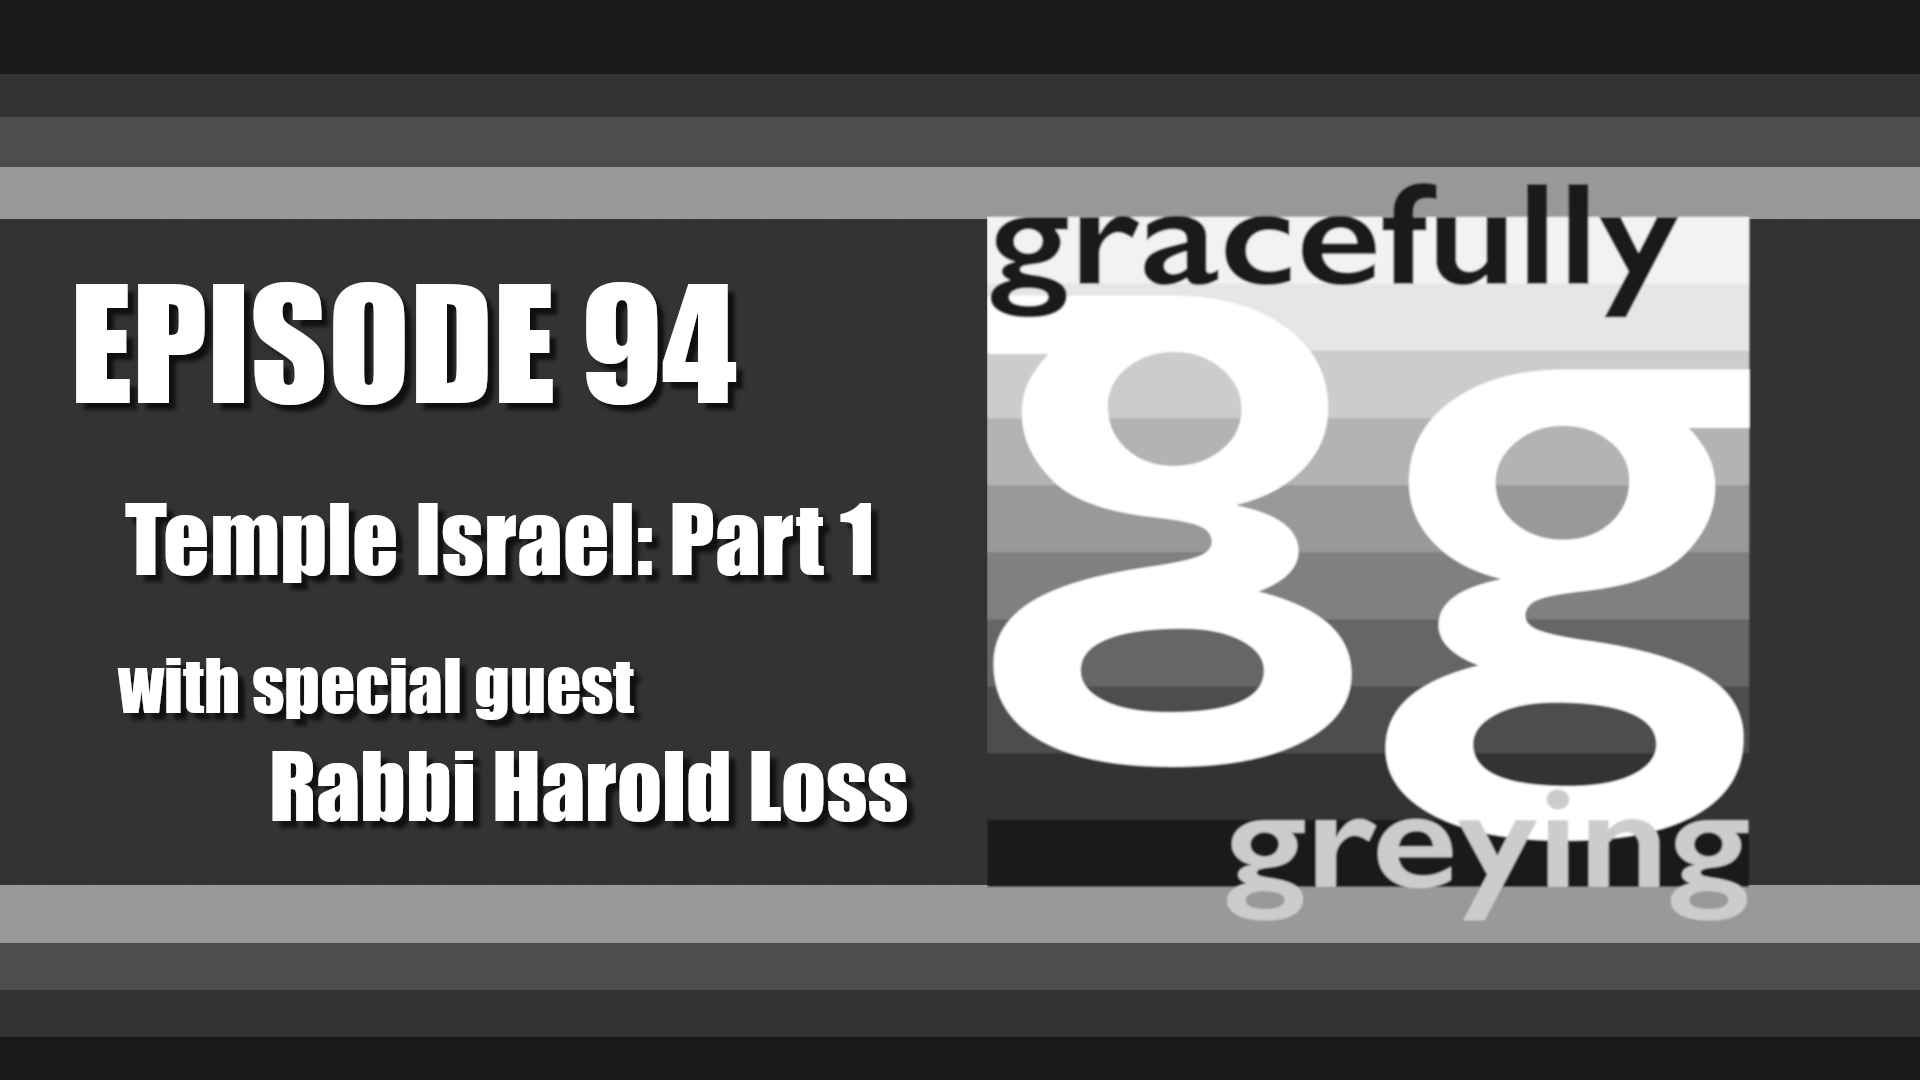 Gracefully Greying - Episode 94 - Temple Israel: Part 1